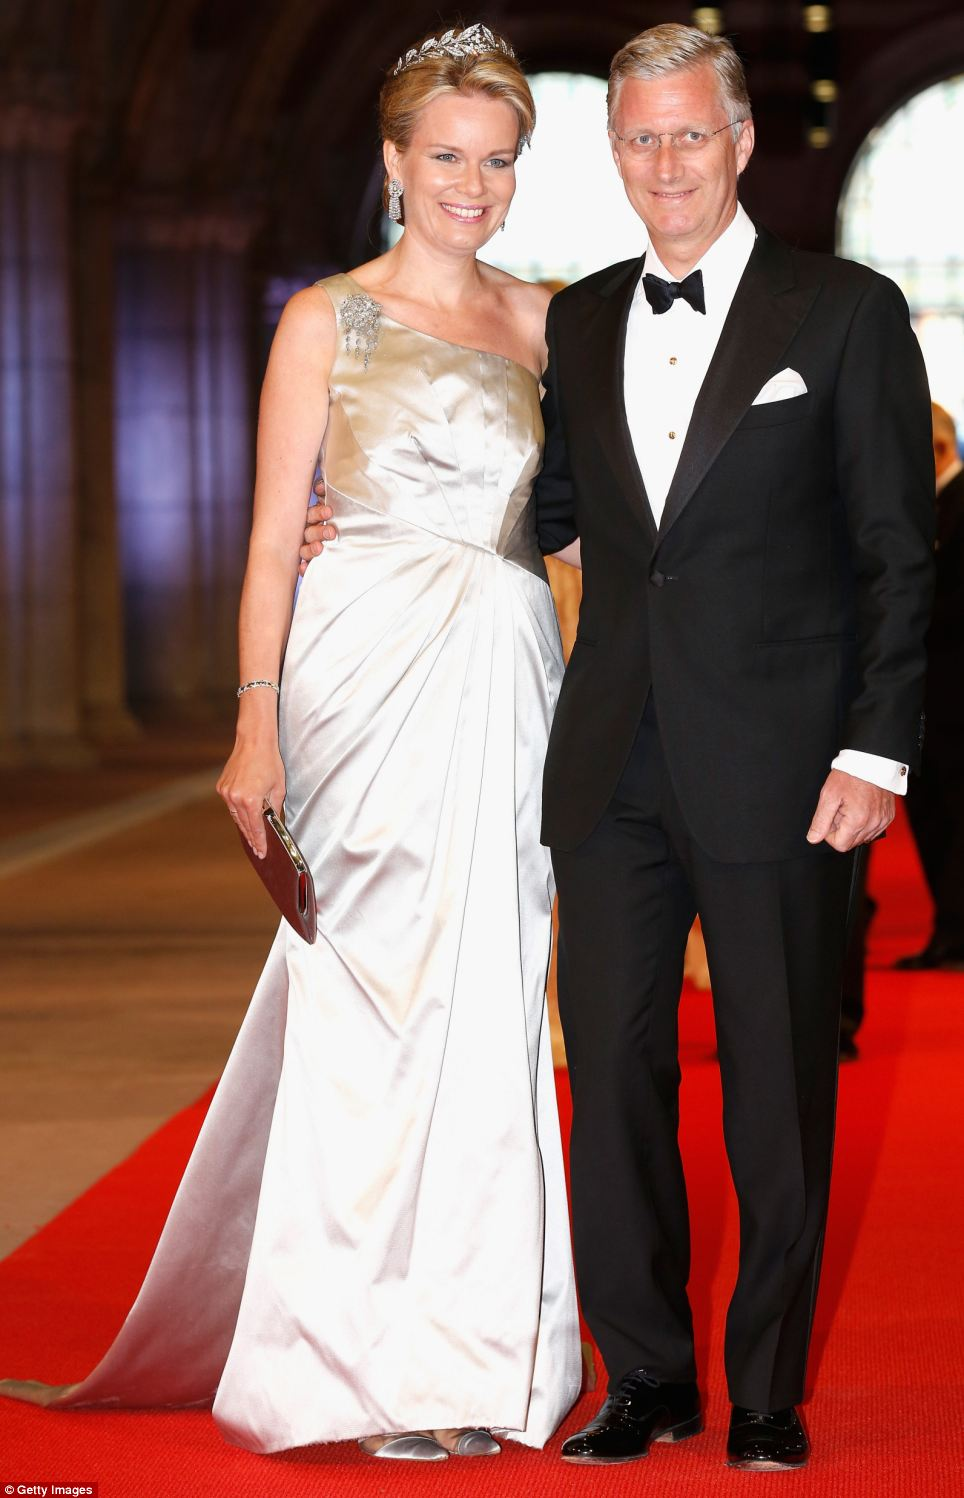 Princess Mathilde of Belgium (left) and Prince Philippe of Belgium (right) from the neighbouring country, were there to celebrate the change of monarchs